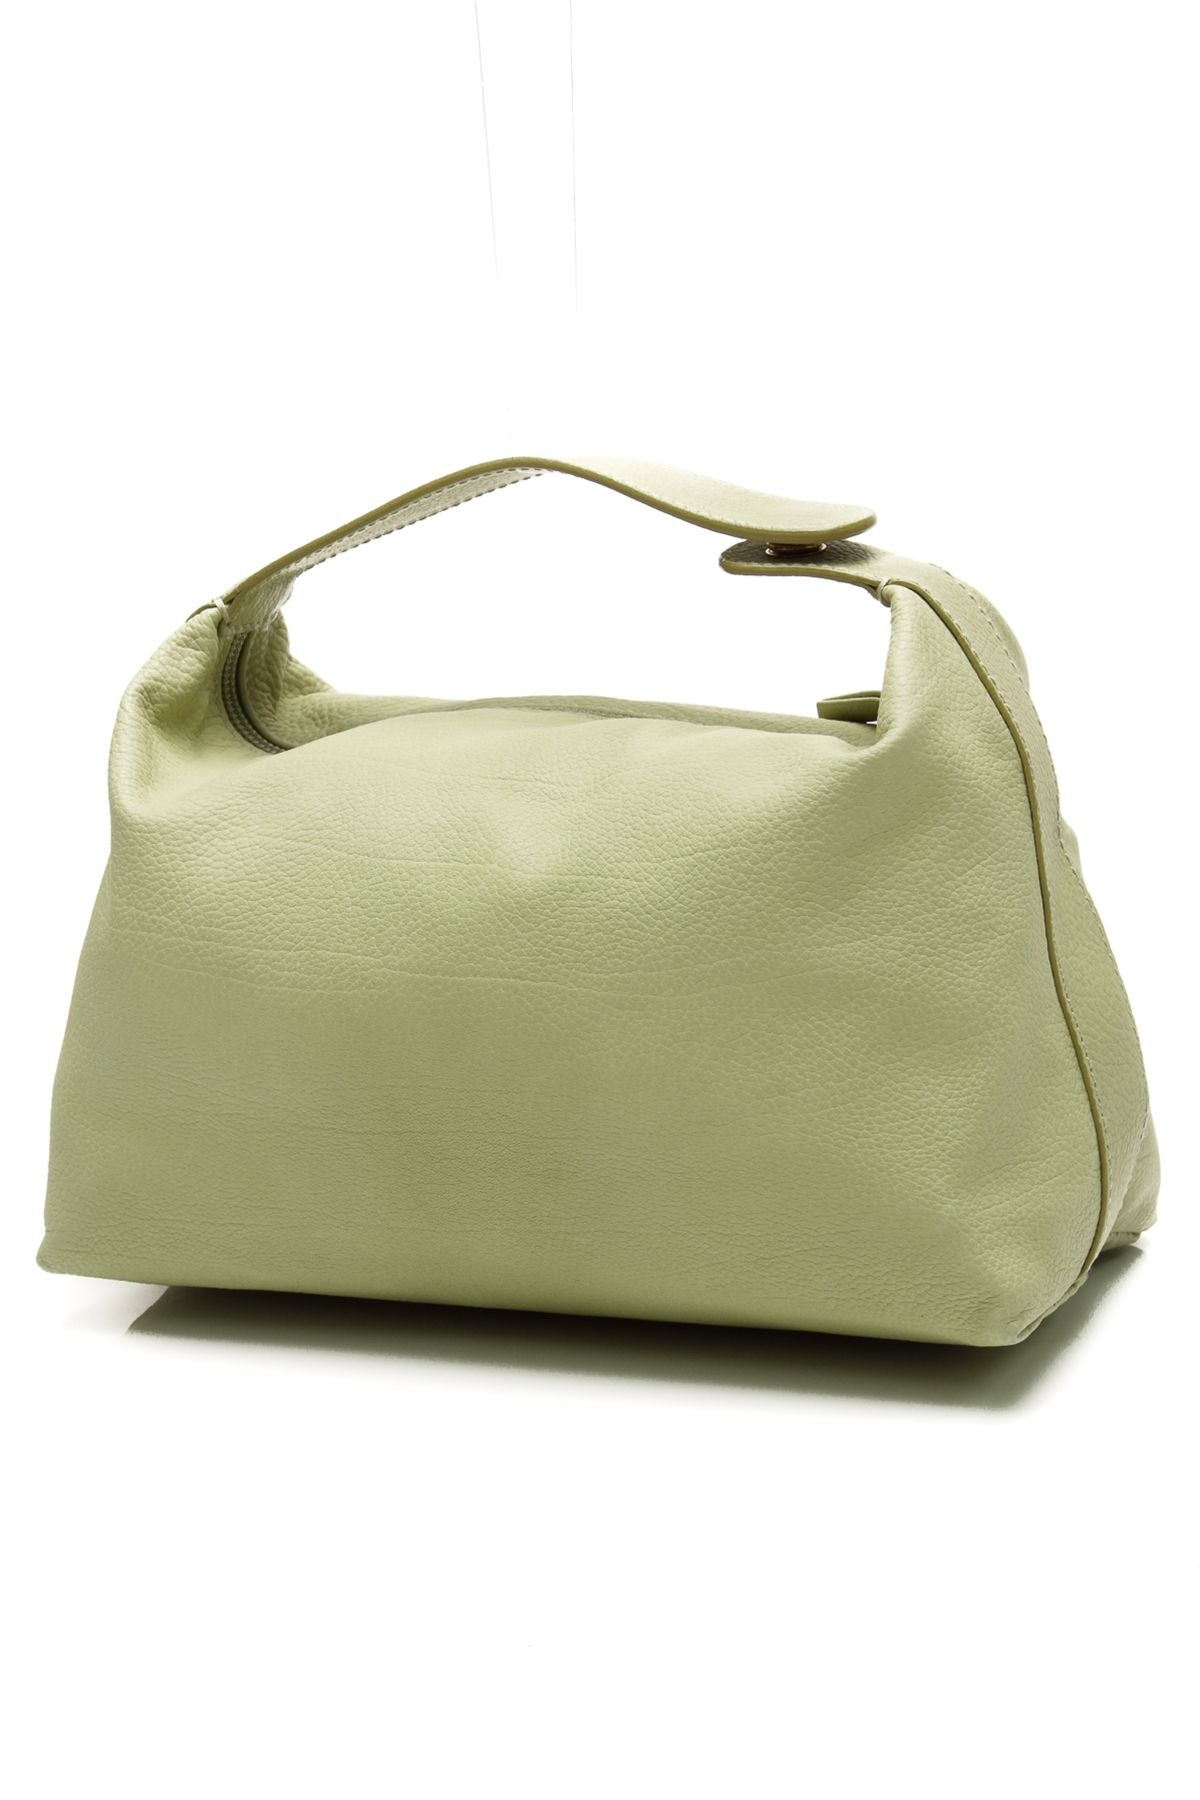 ... 6e700 bottega-veneta-zip-cosmetic-bag-green  online store 349d7 ced81 New  Authentic Bottega Veneta Leather Cosmetic Case Pouch Bag Brown 132534 2517  ... af84ba9696120